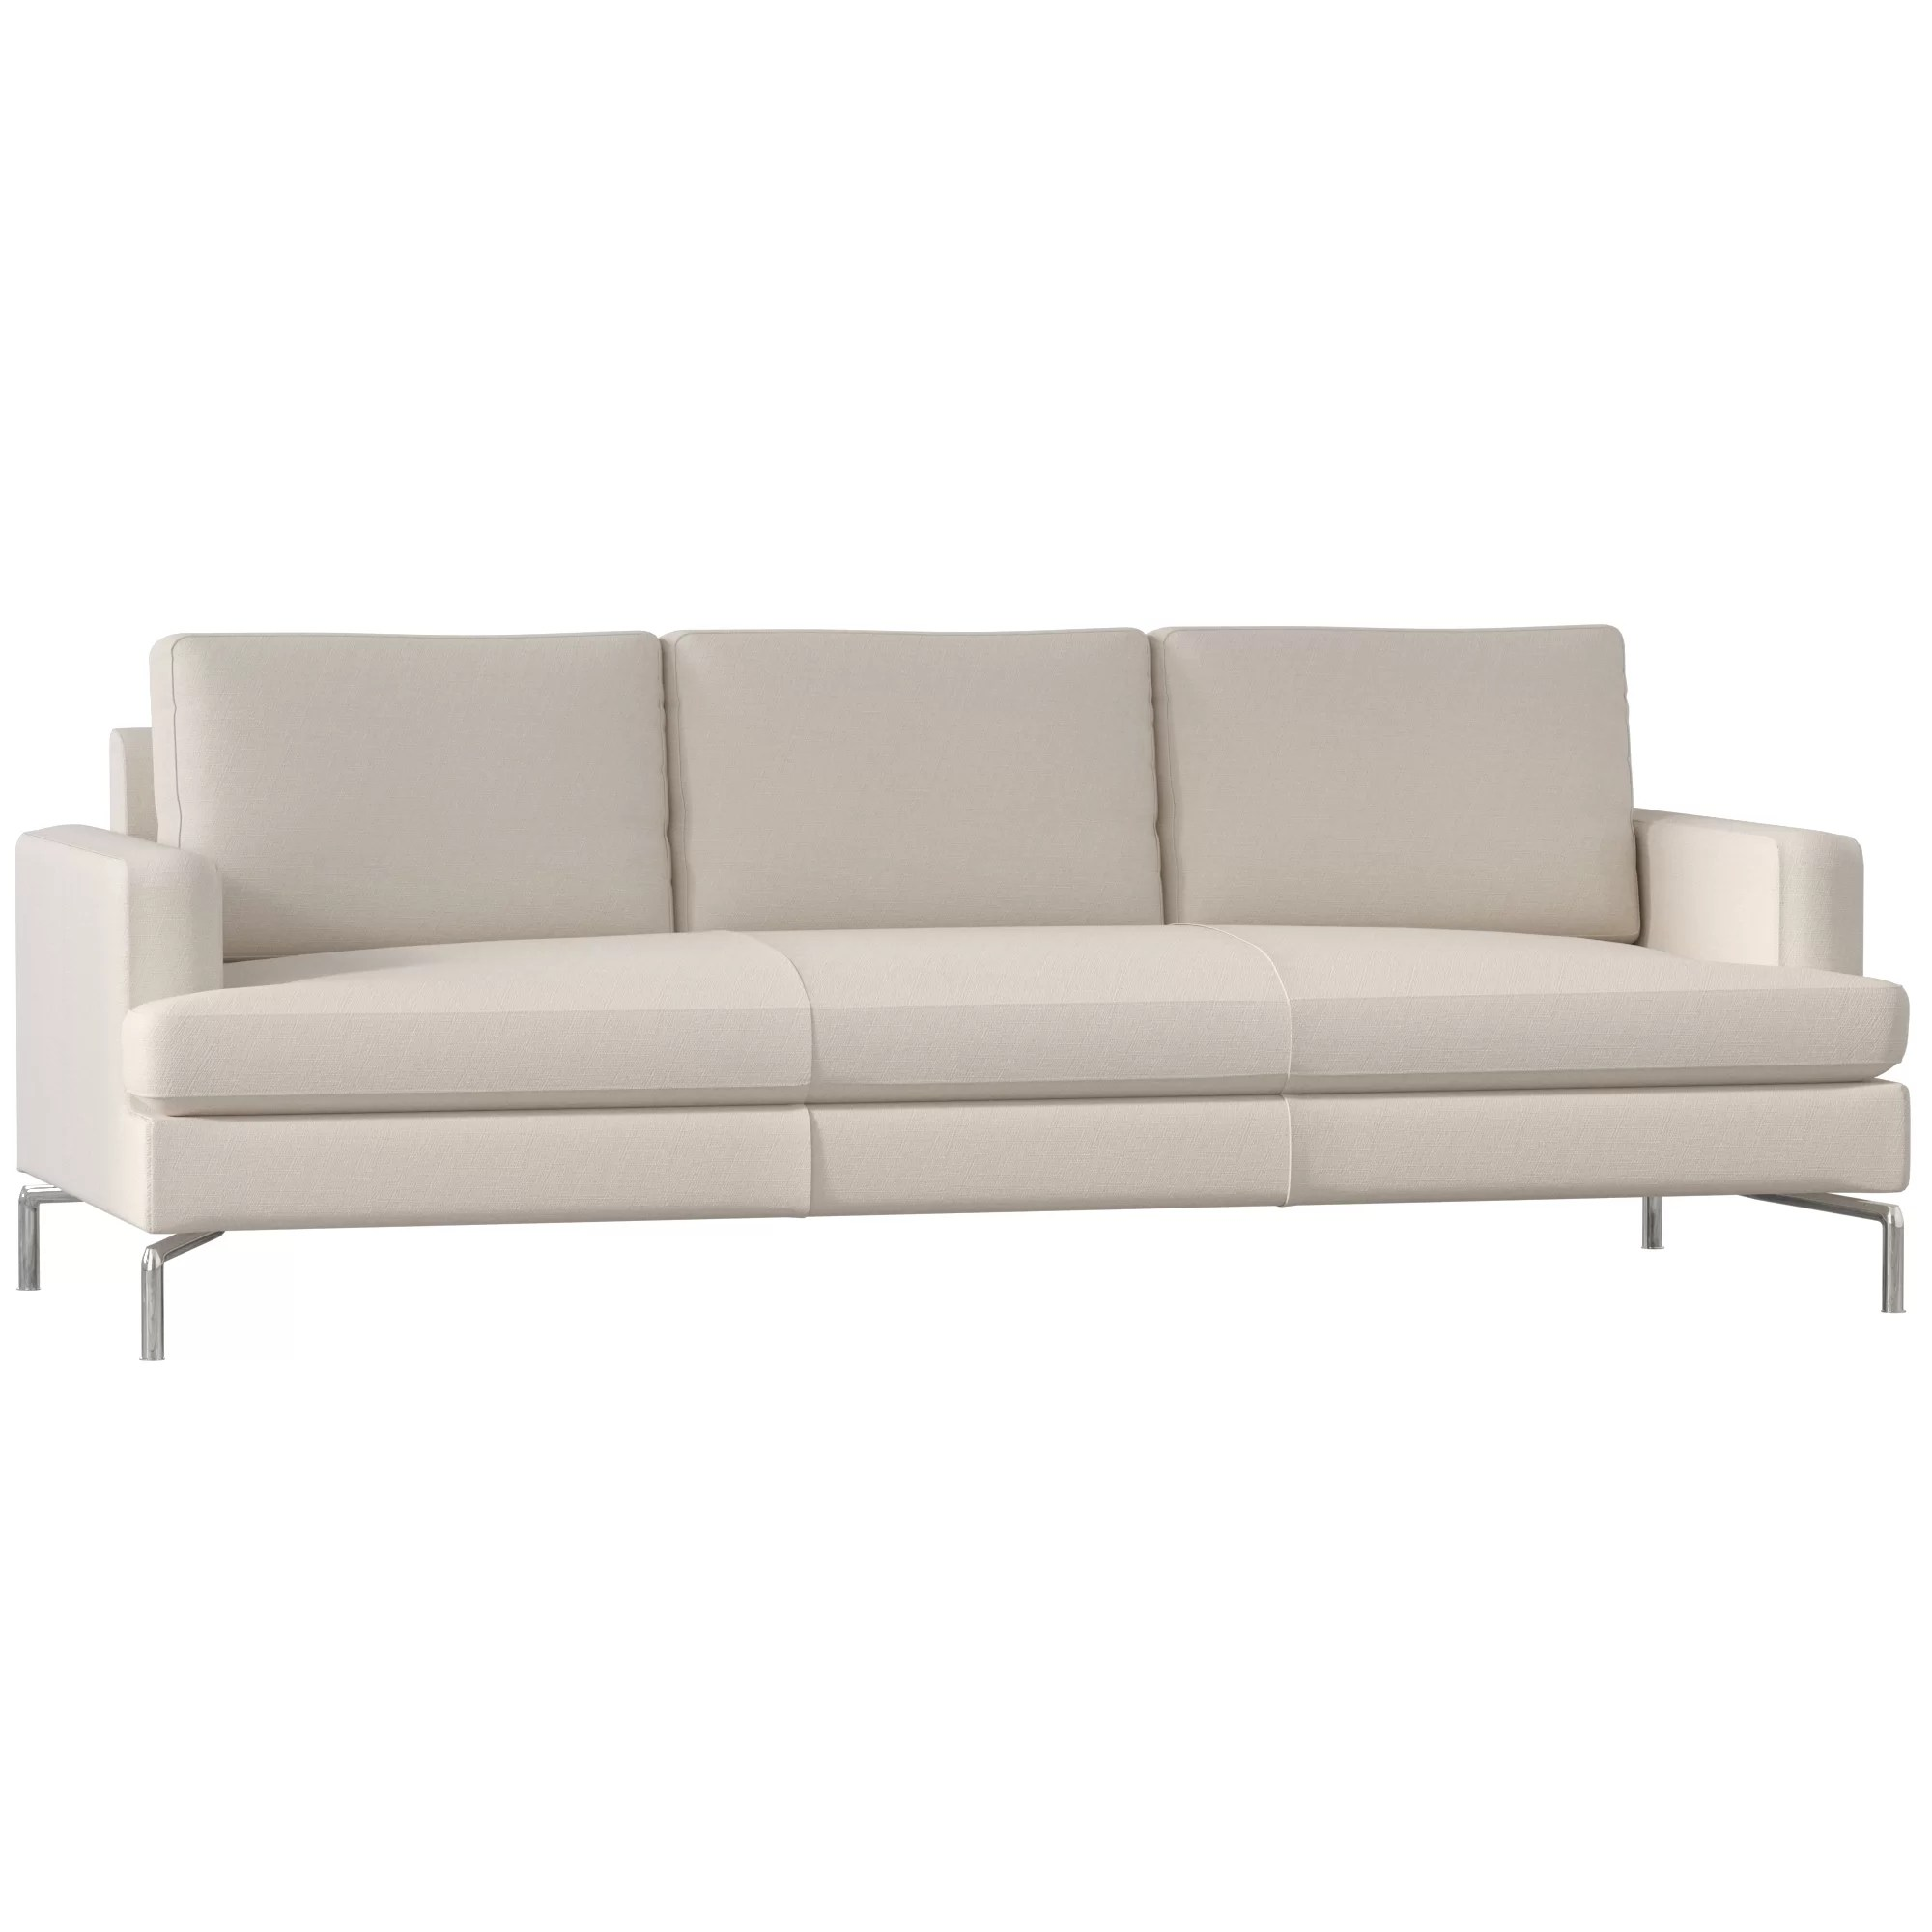 eq3 sofa z gallerie sofas eve wayfair